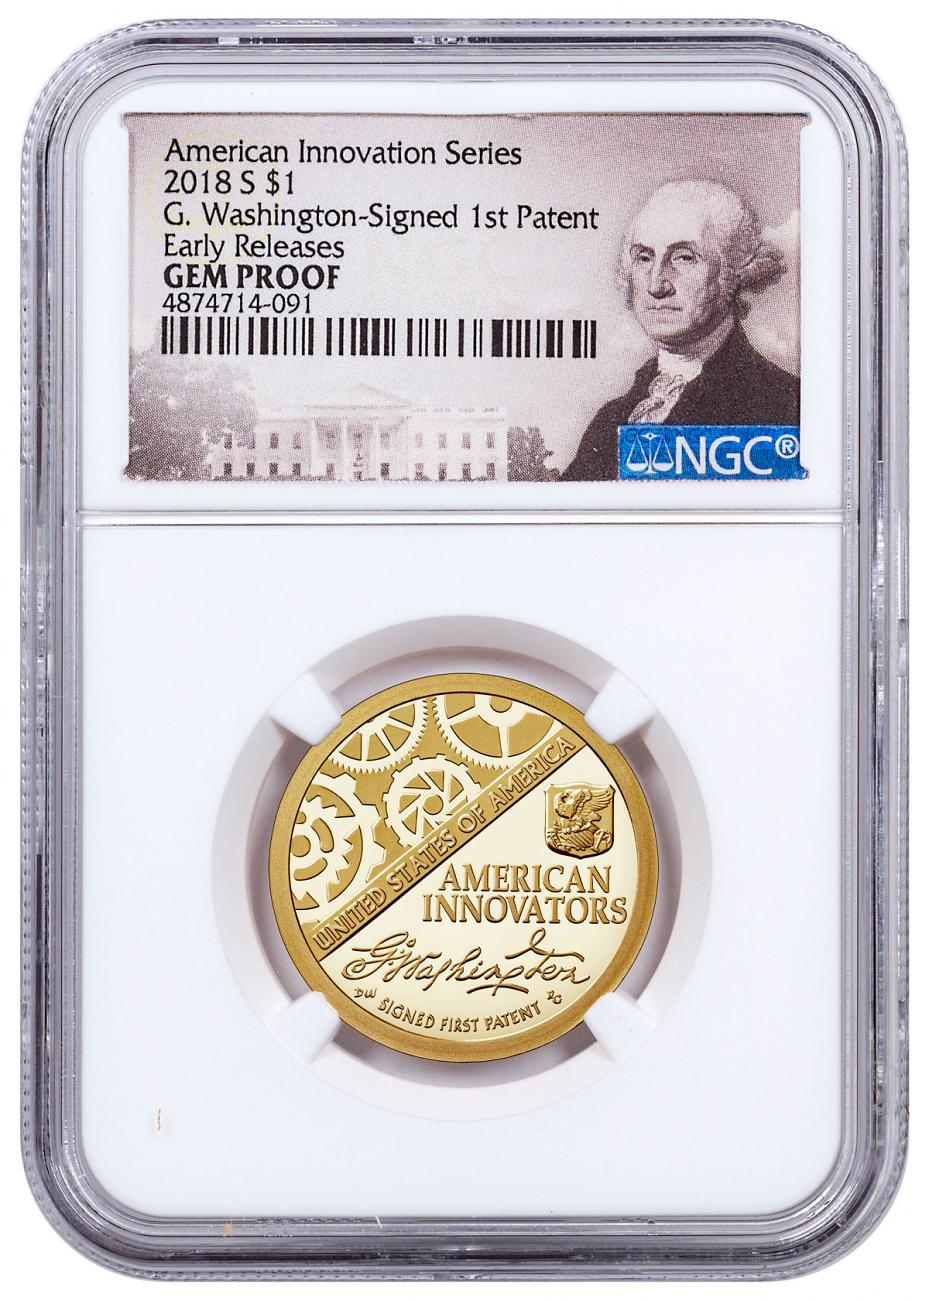 2018-S American Innovation Washington-Signed First Patent Commemorative Clad Dollar Proof Coin NGC GEM Proof ER Washington Label